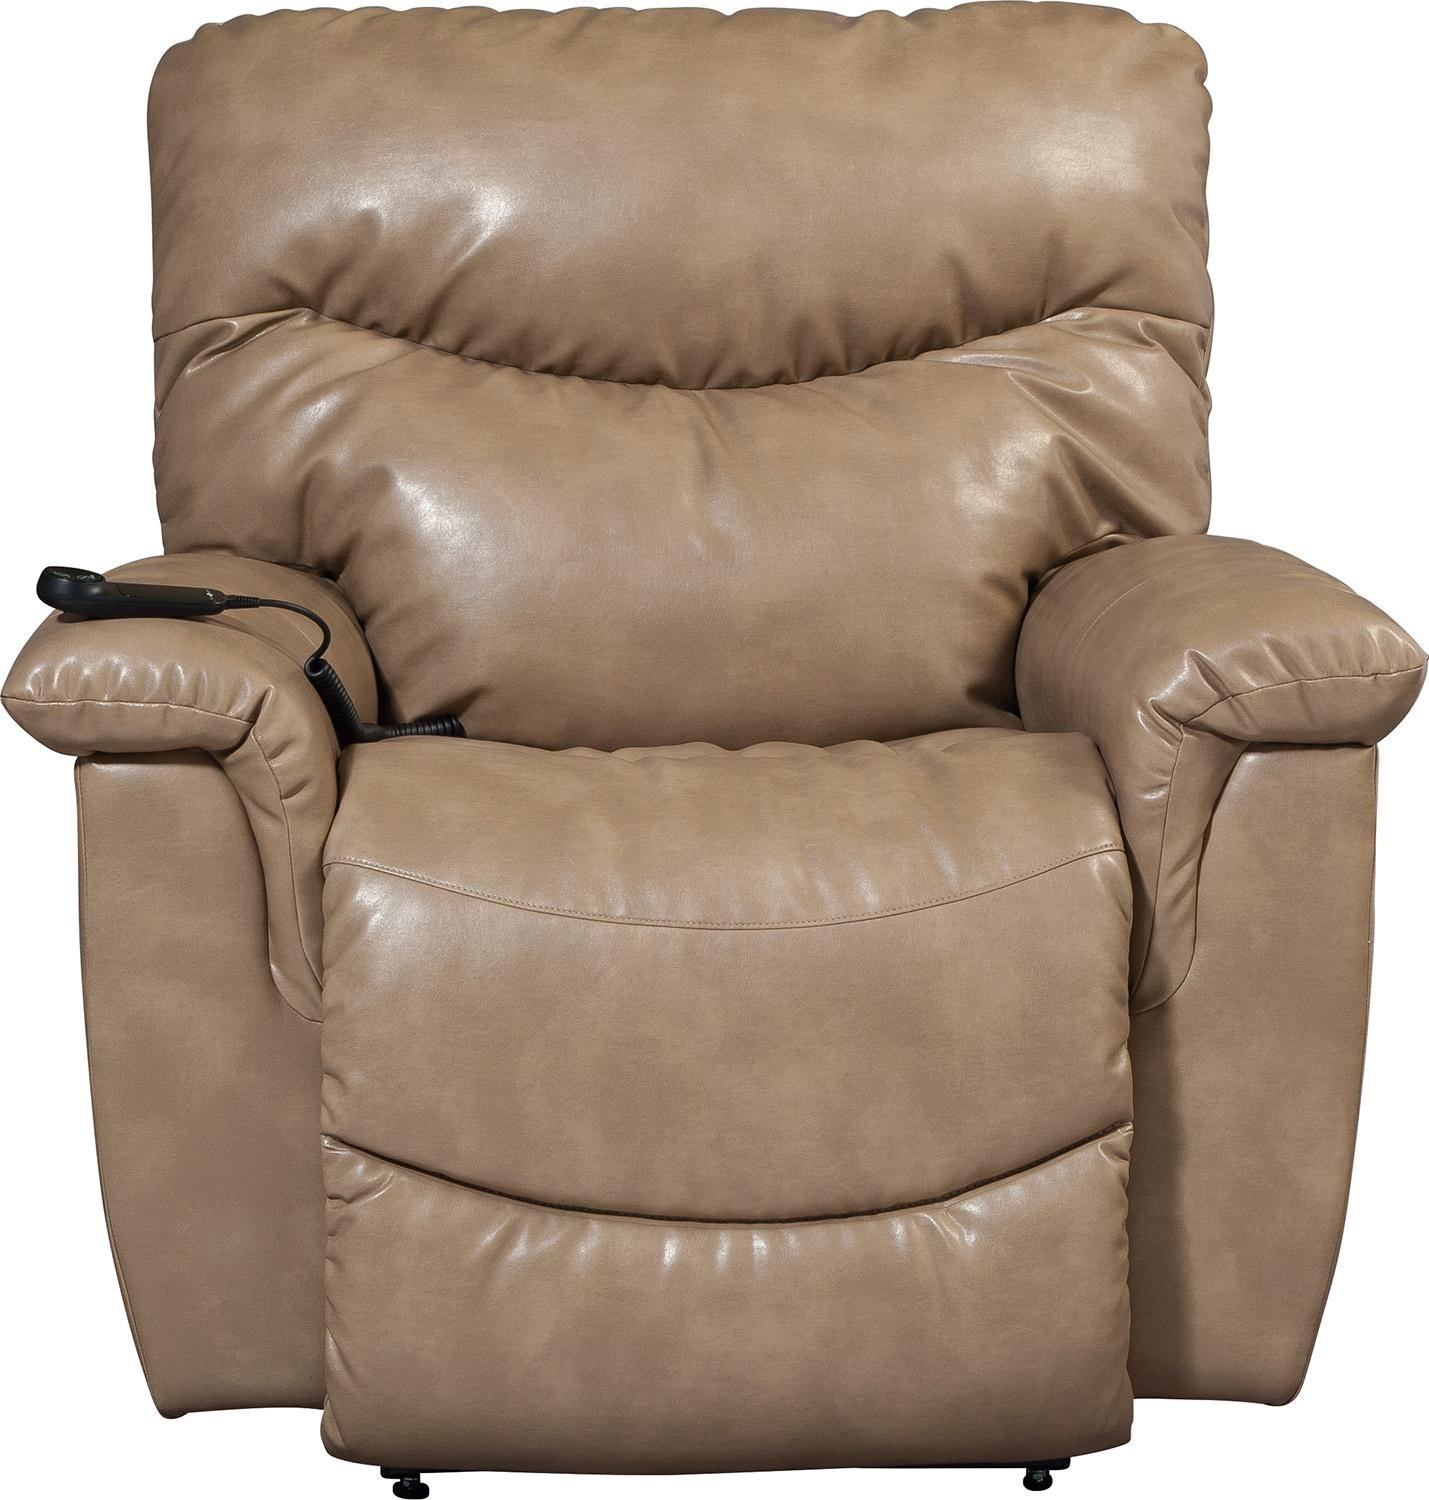 La-Z-Boy James Casual Silver Luxury Lift? Power Recliner - Gill Brothers Furniture - Lift Chairs  sc 1 st  Gill Brothers Furniture & La-Z-Boy James Casual Silver Luxury Lift? Power Recliner - Gill ... islam-shia.org